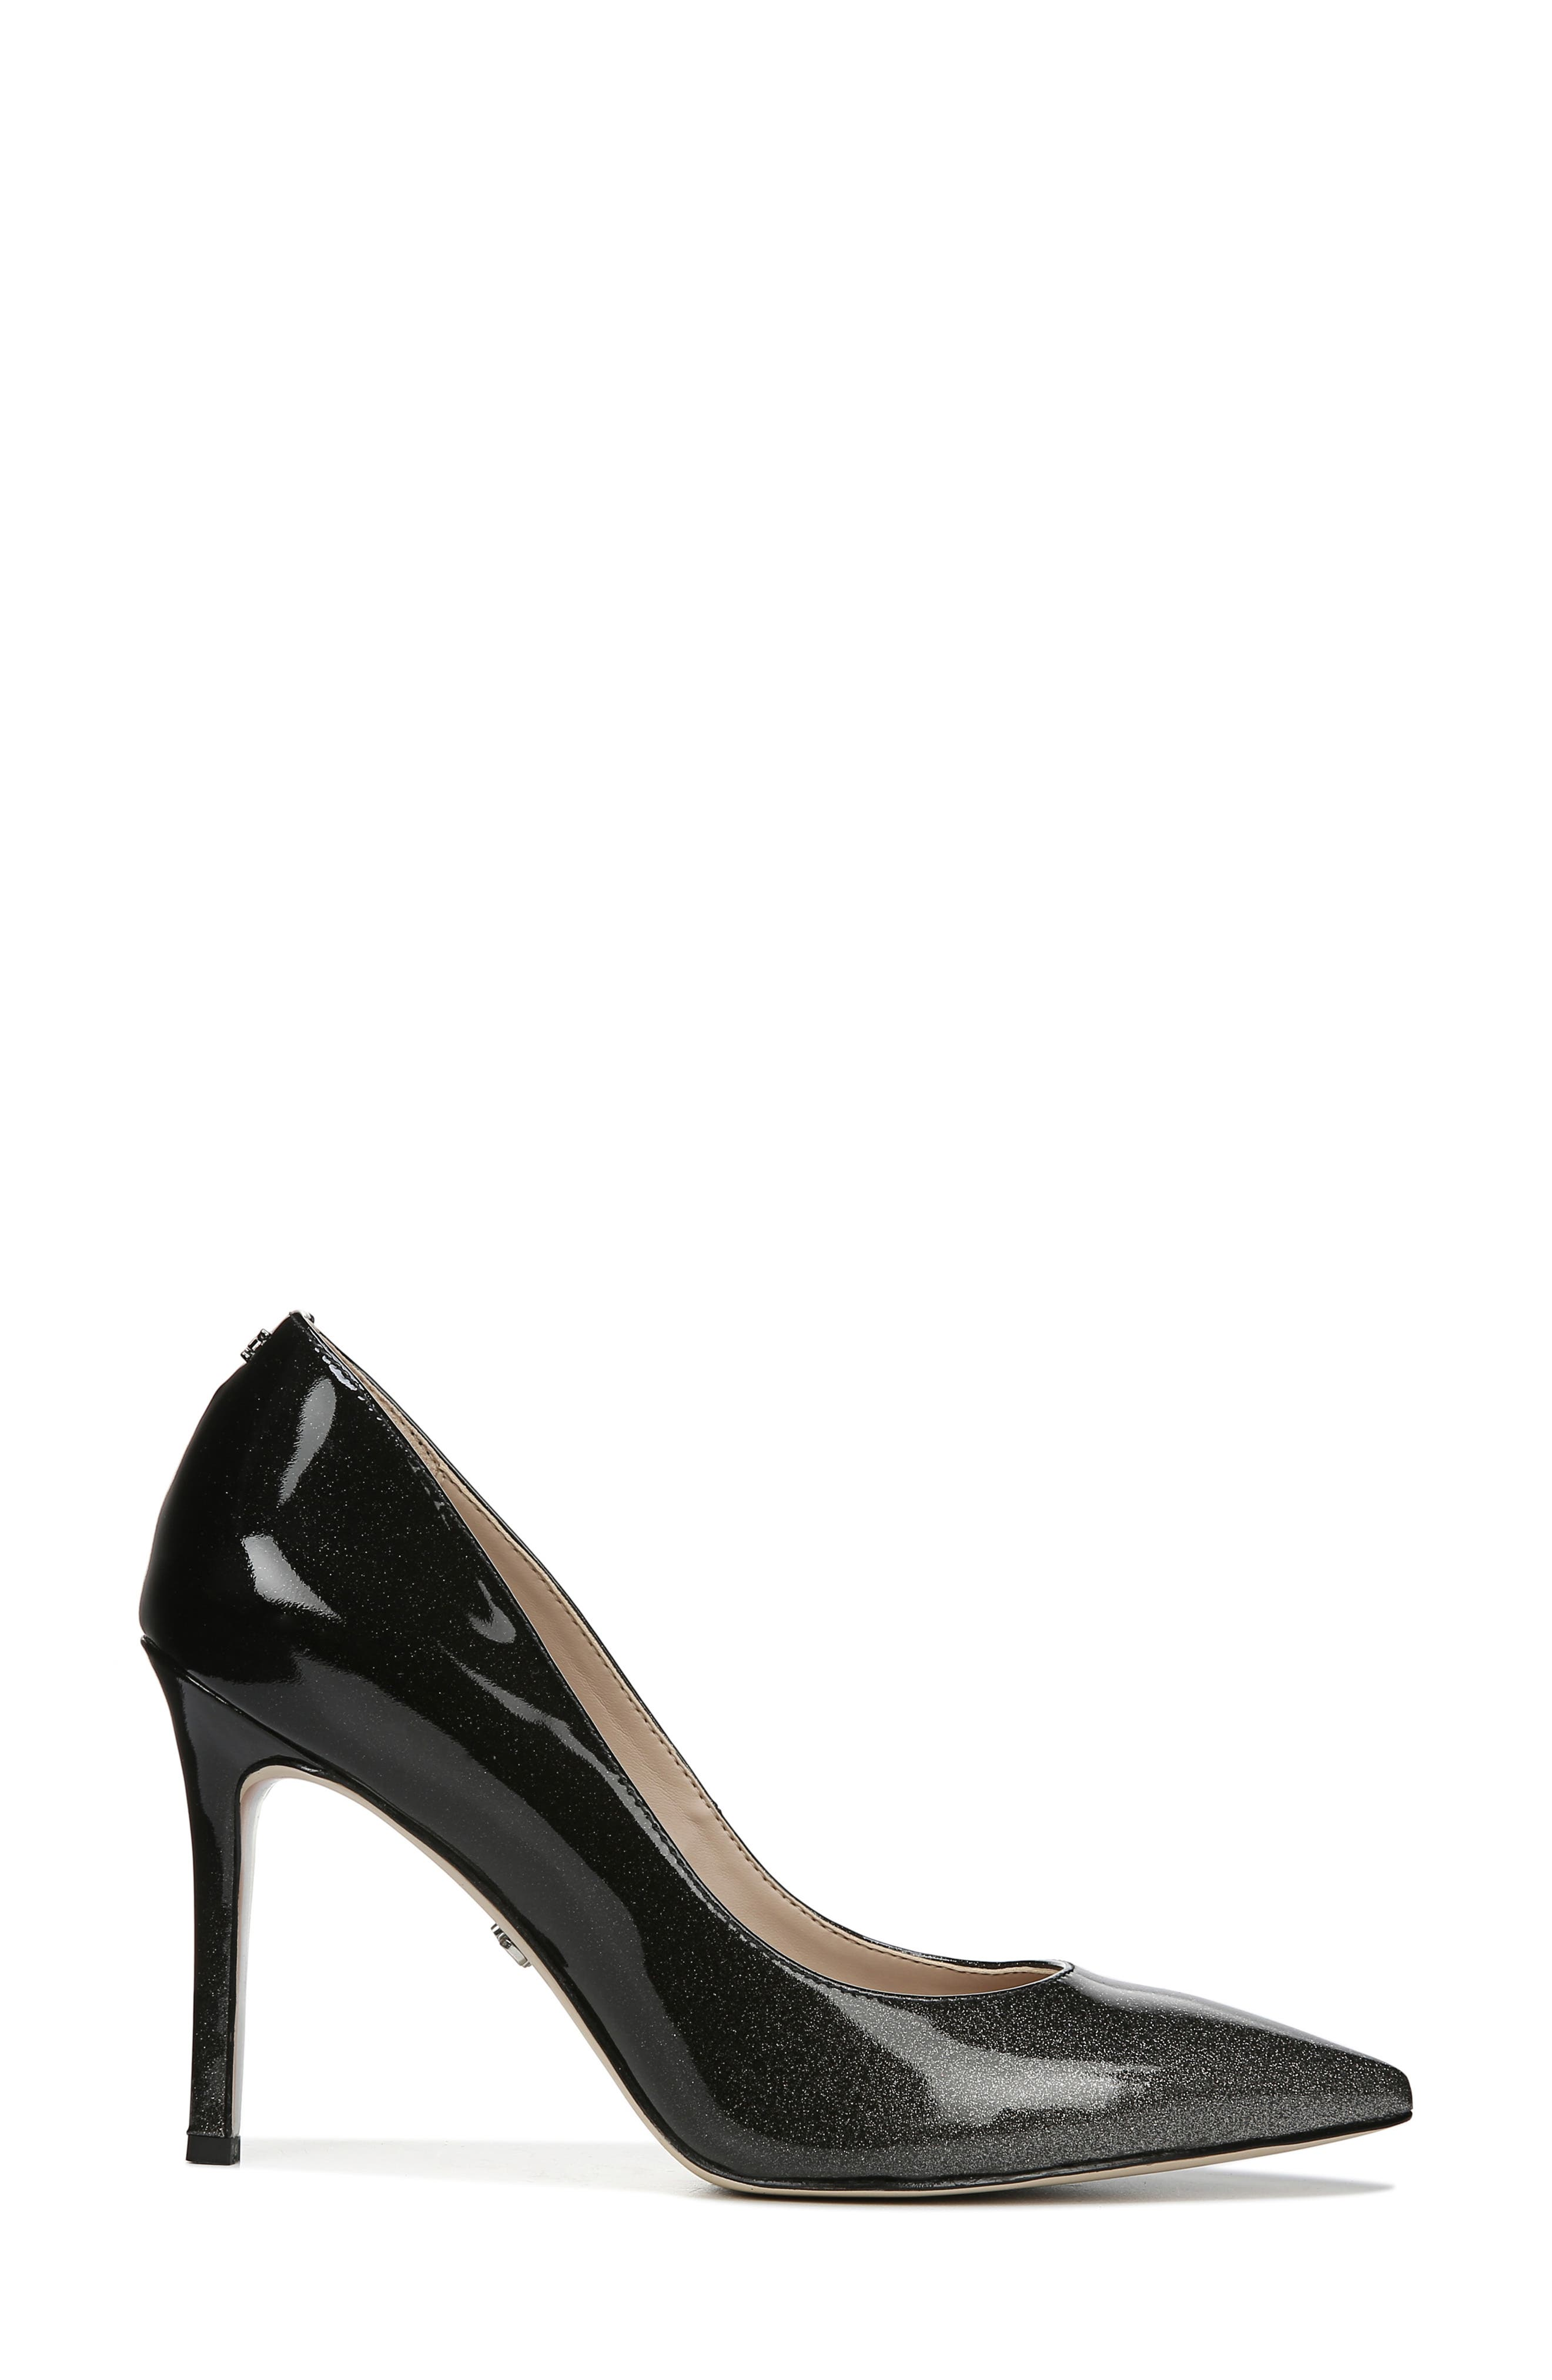 SAM EDELMAN, Hazel Pointy Toe Pump, Alternate thumbnail 2, color, BLACK/ SILVER